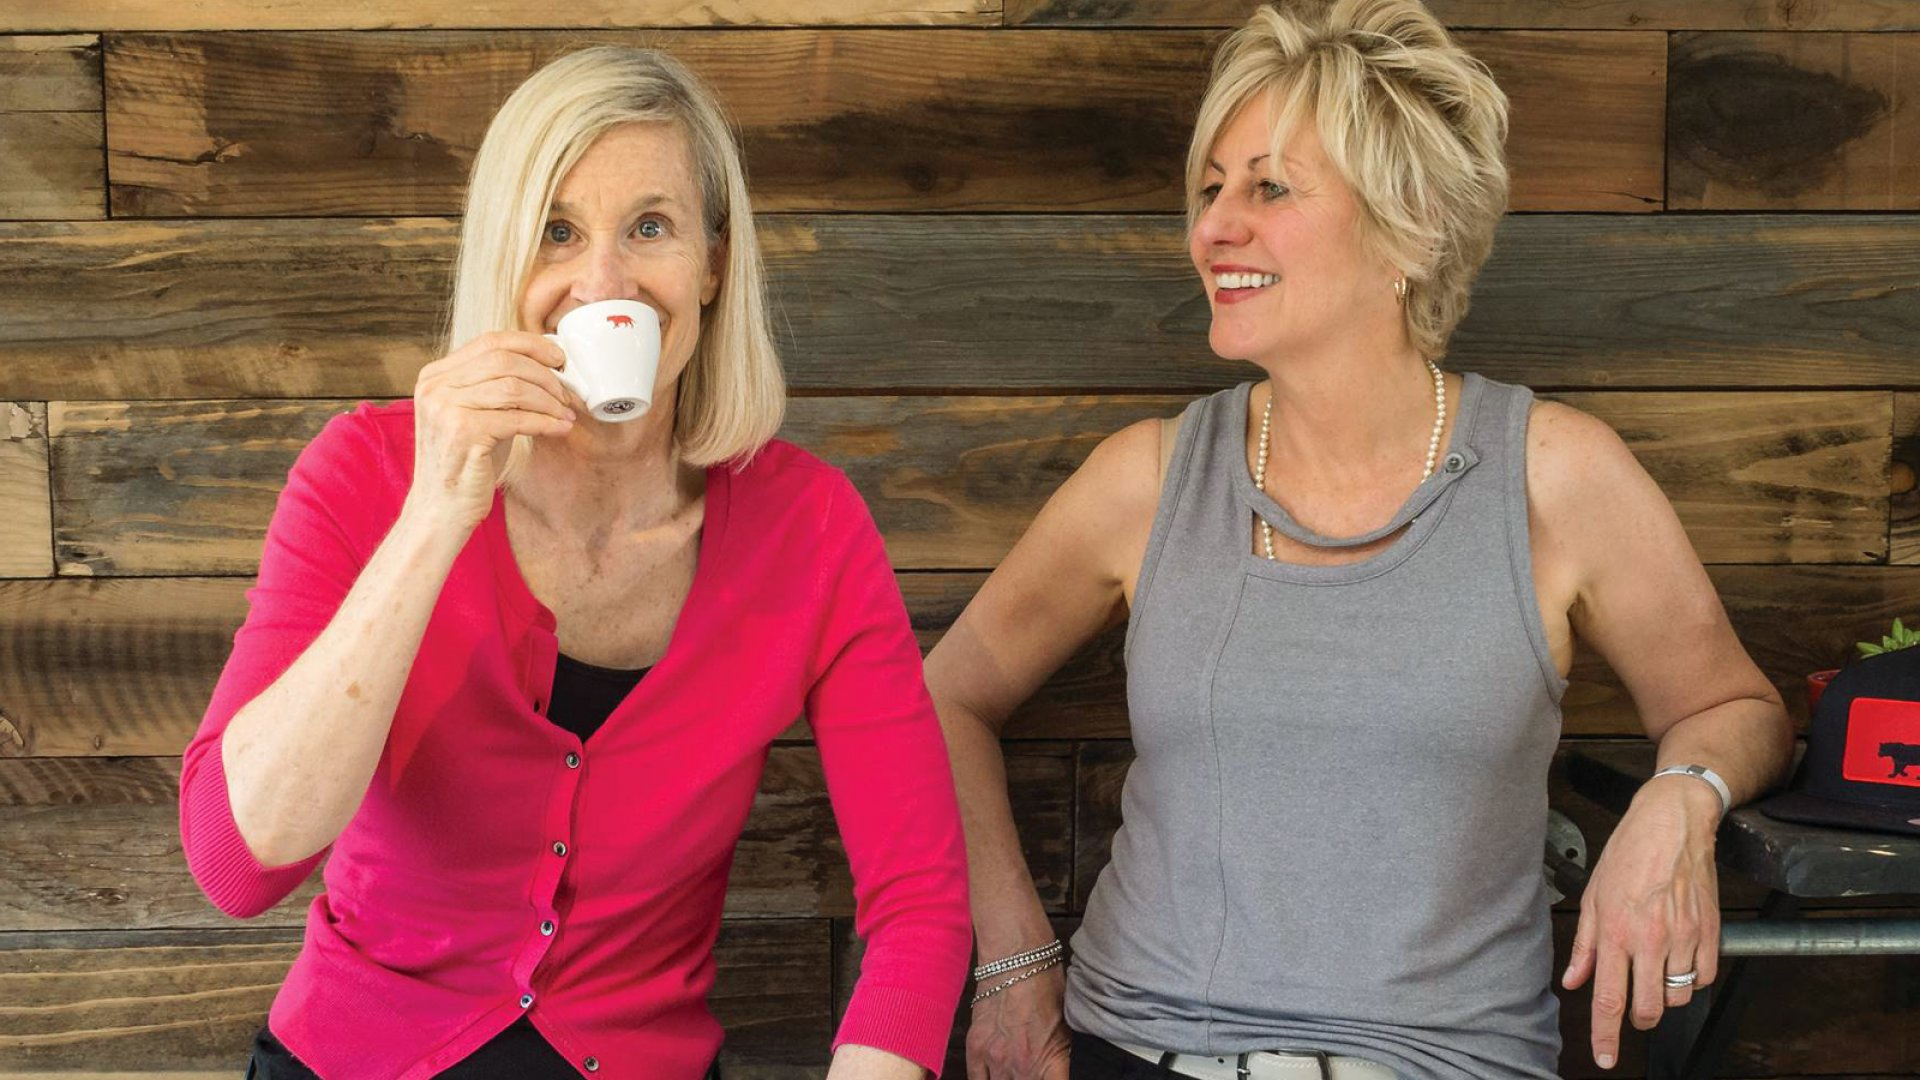 Equator Coffees & Teas founders Brooke McDonnell (left) and Helen Russell (right) with their Bengal tiger-branded blends in Northern California.